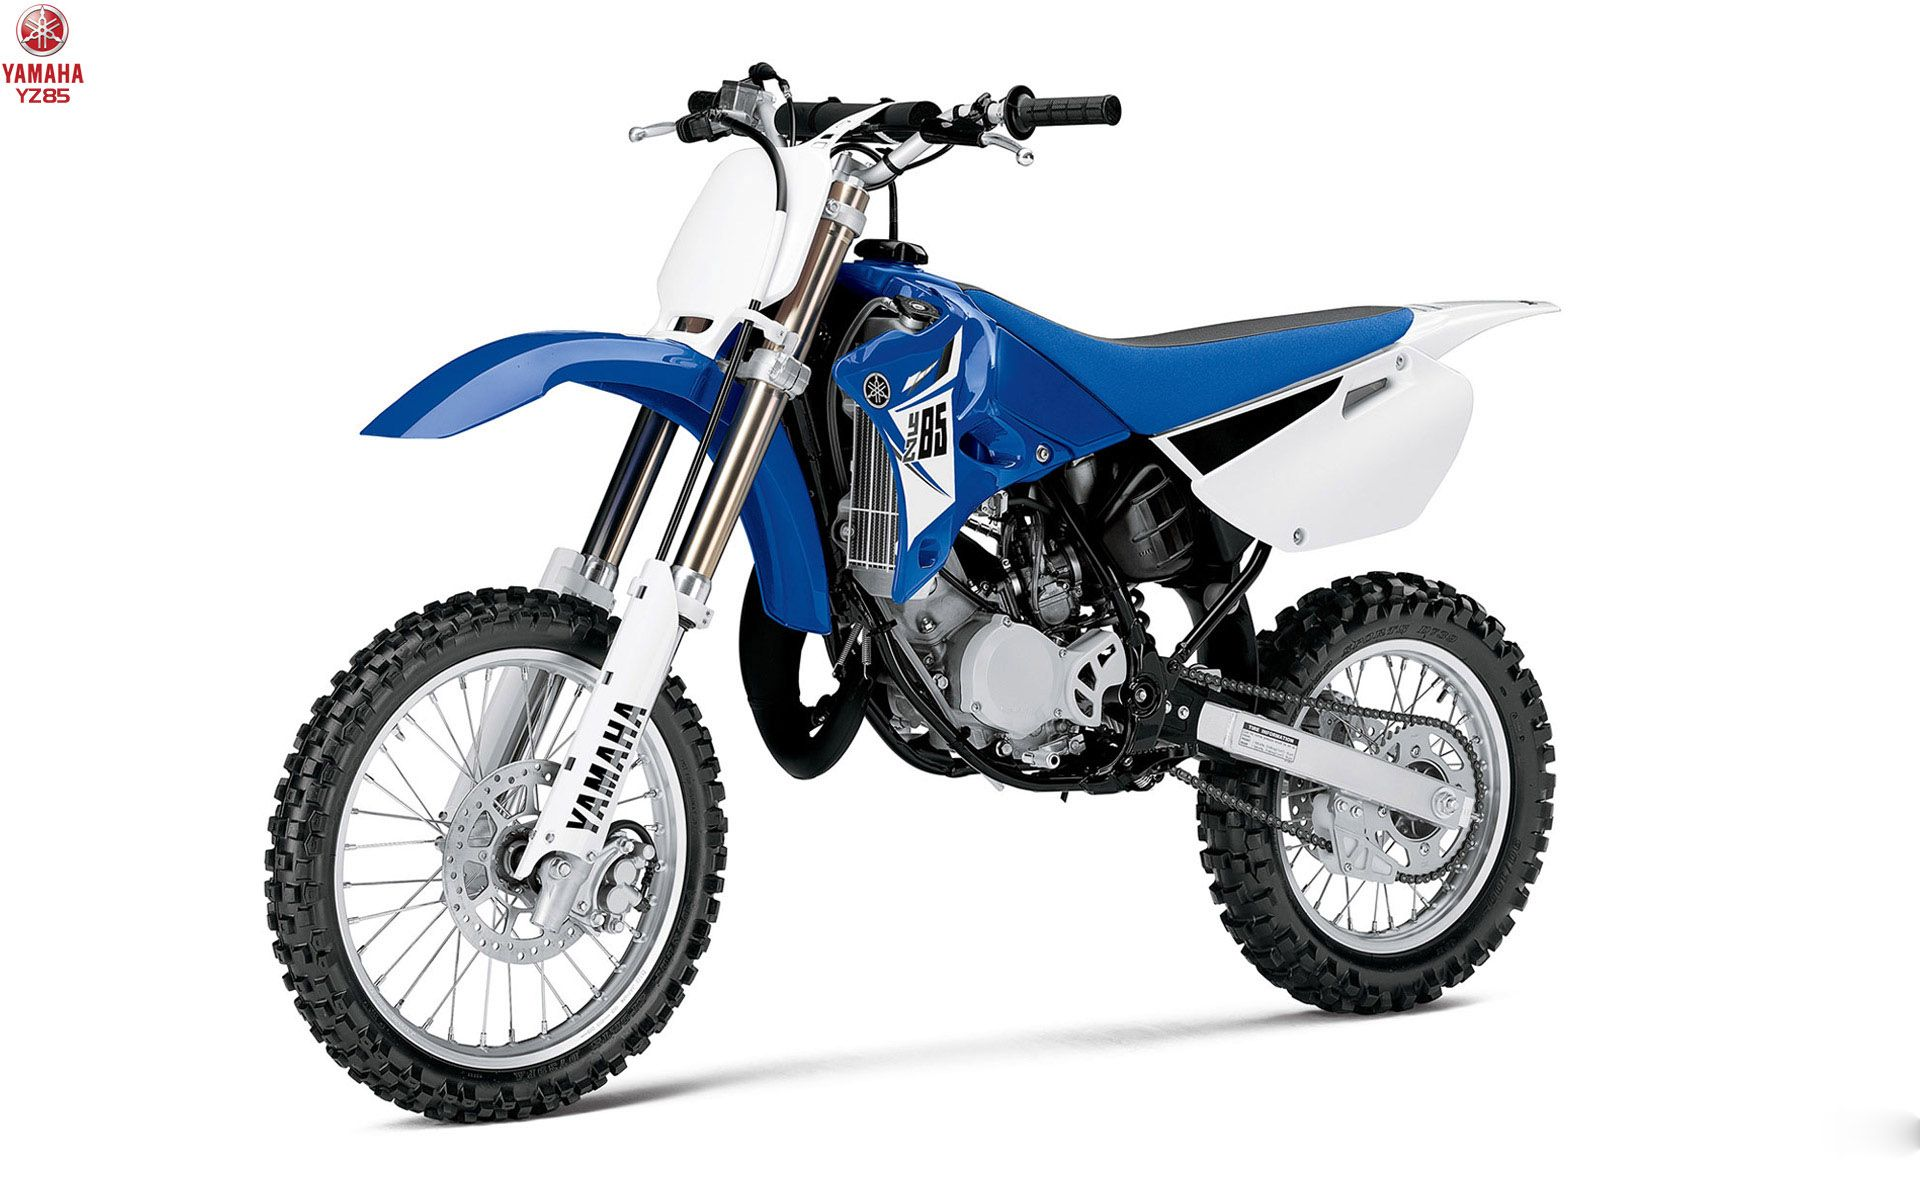 Stunning Yamaha Yz85 2 Stroke Pictures Pin Hd Wallpapers